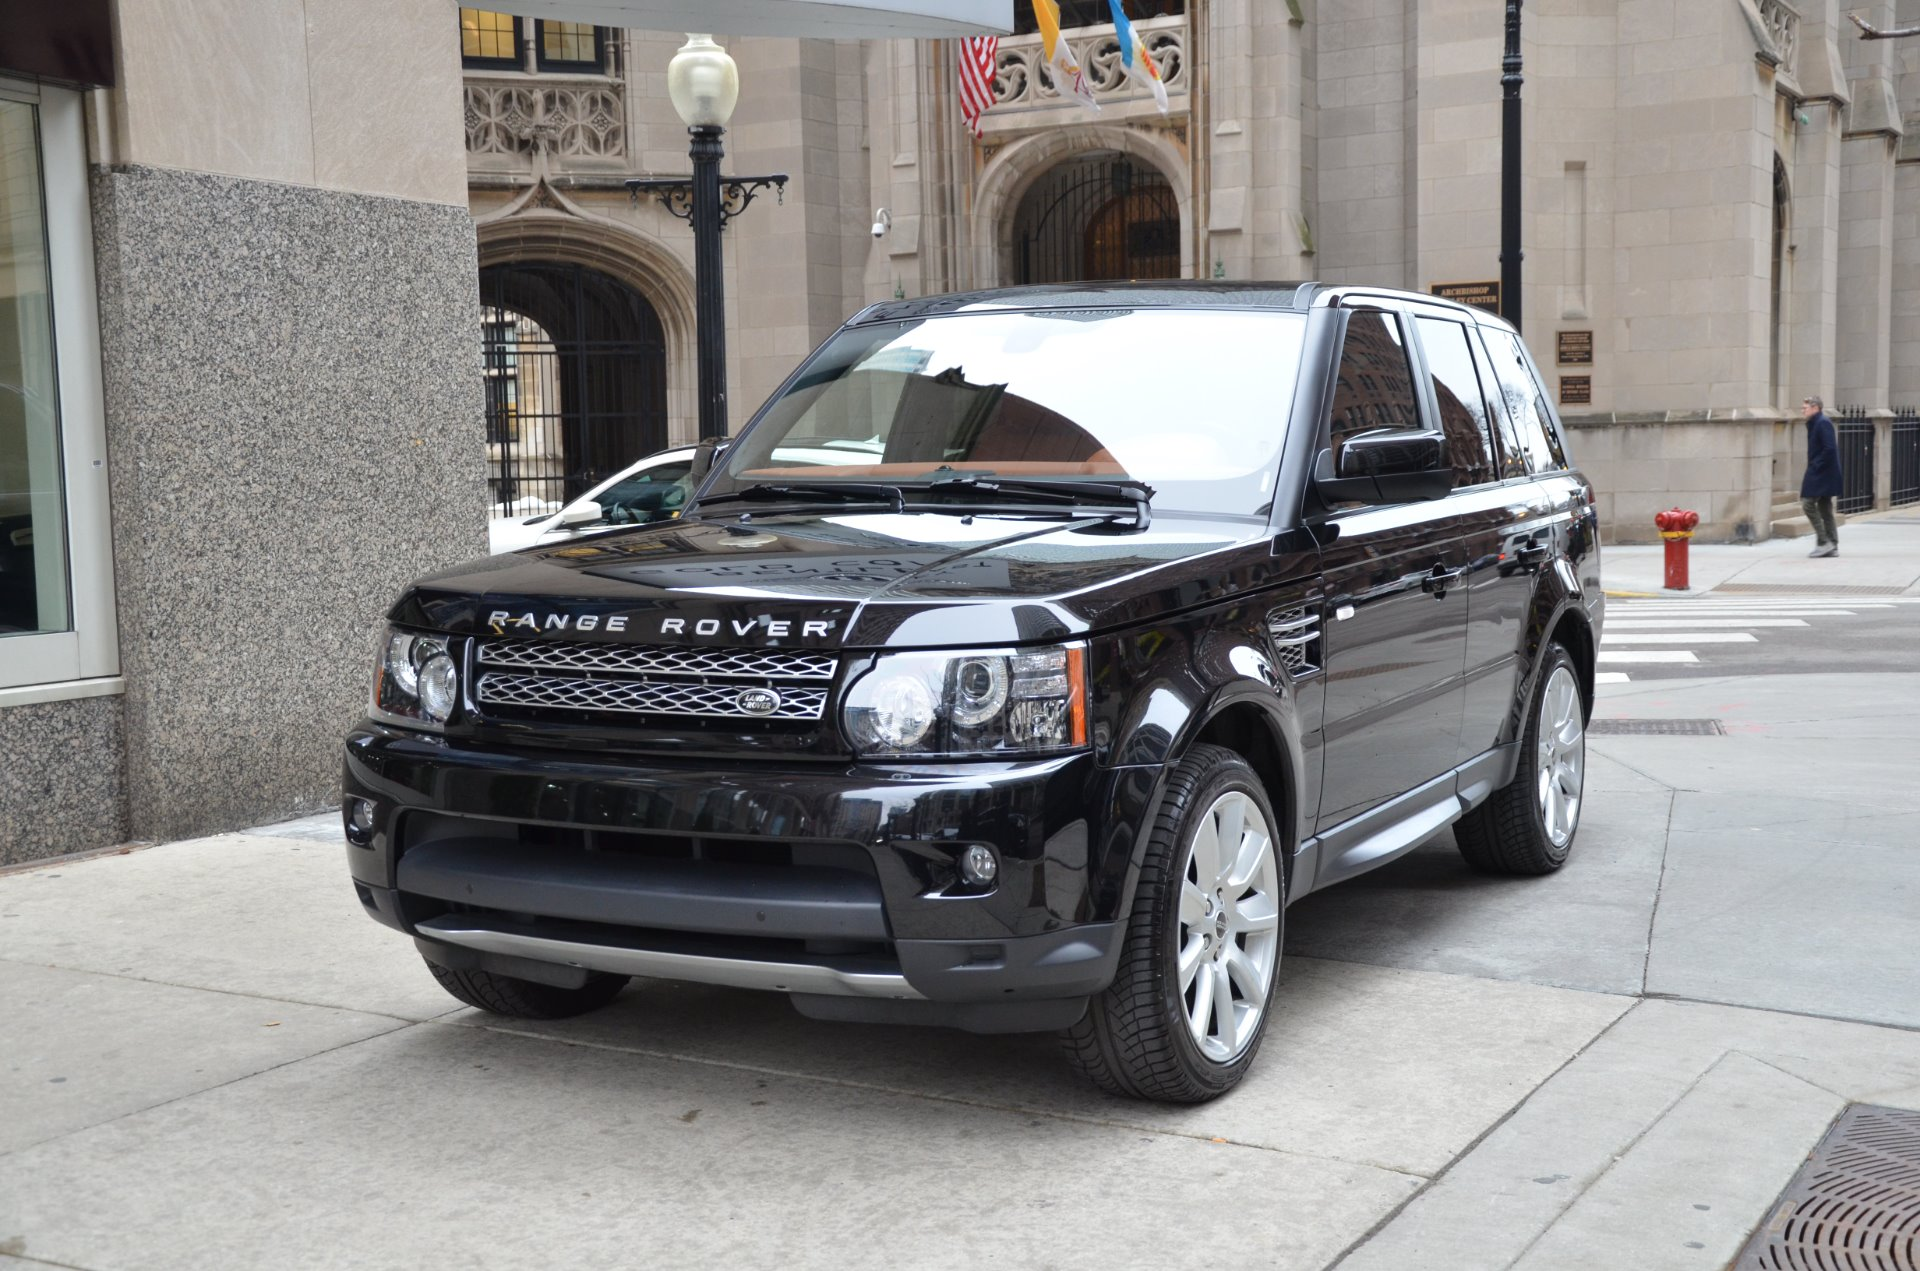 2013 land rover range rover sport supercharged used bentley used rolls royce used. Black Bedroom Furniture Sets. Home Design Ideas